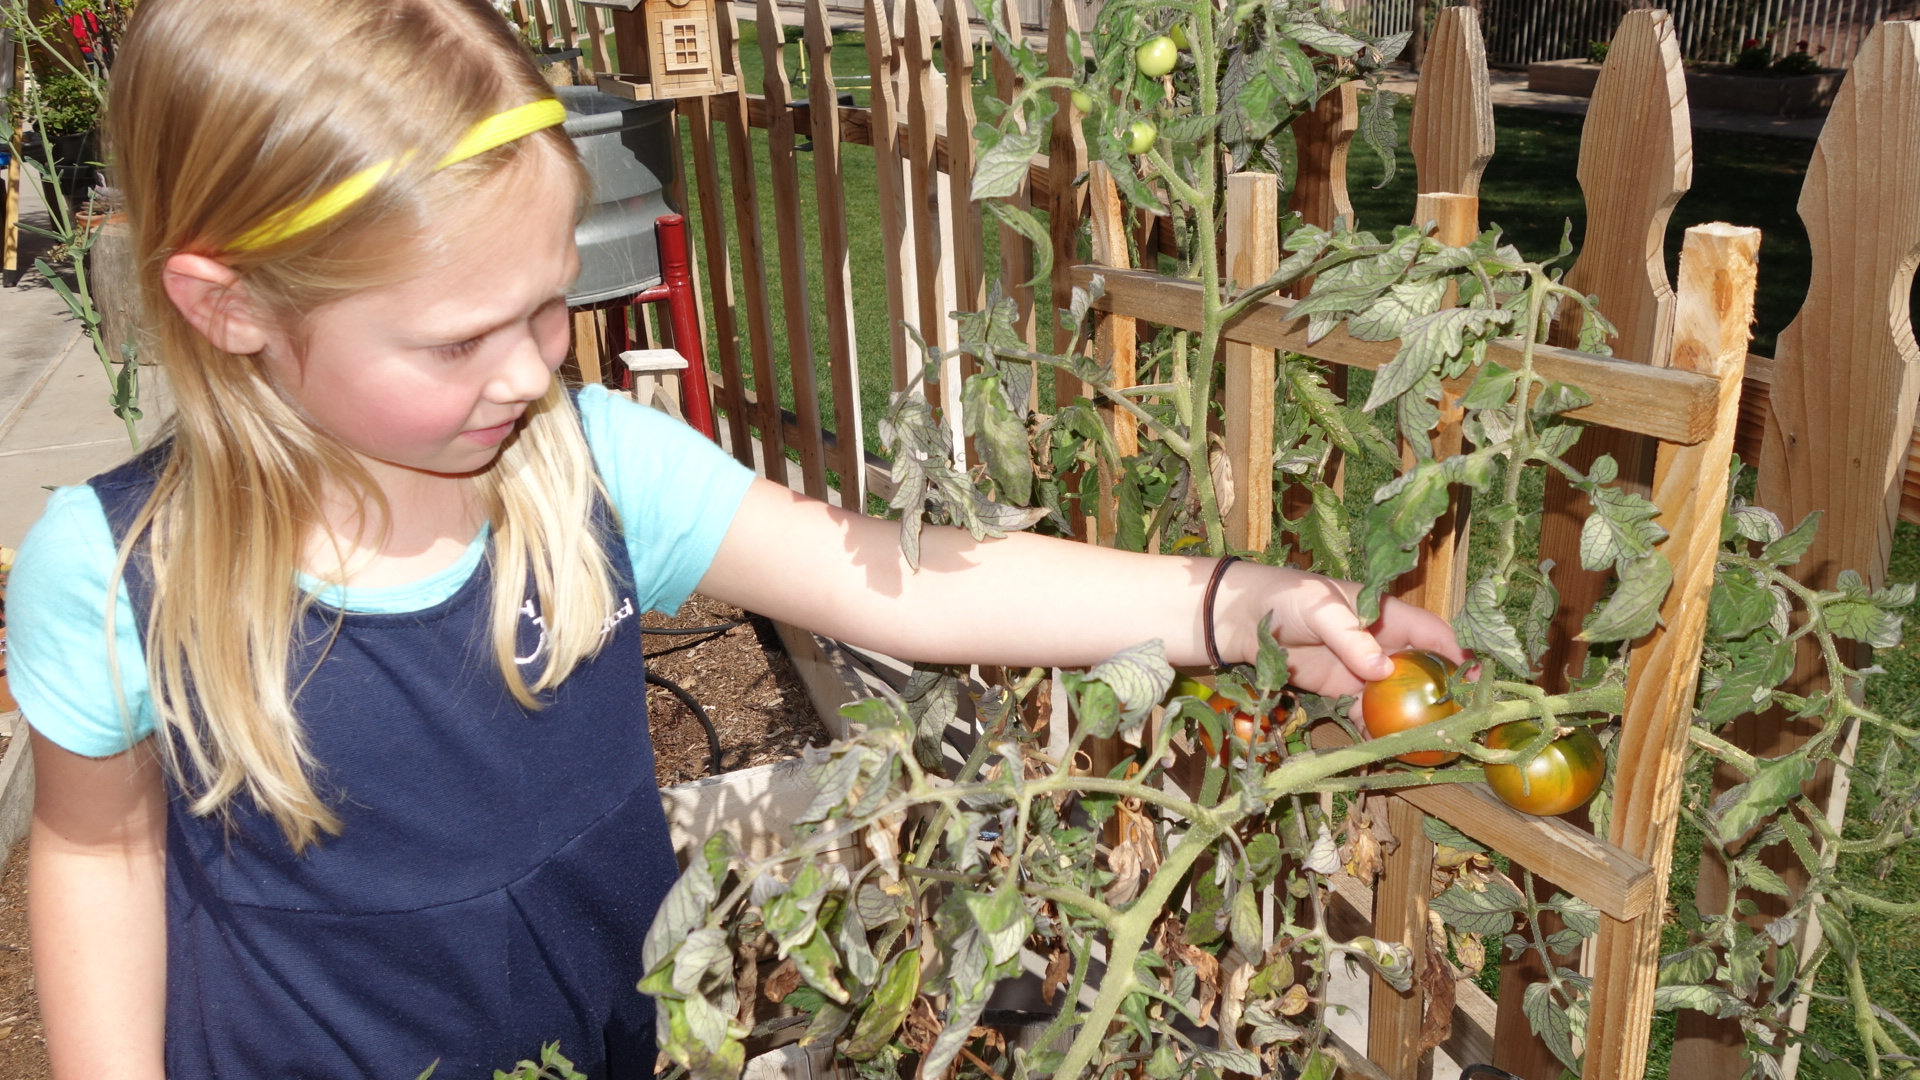 The wait is over when the children can get the first harvest of the year.